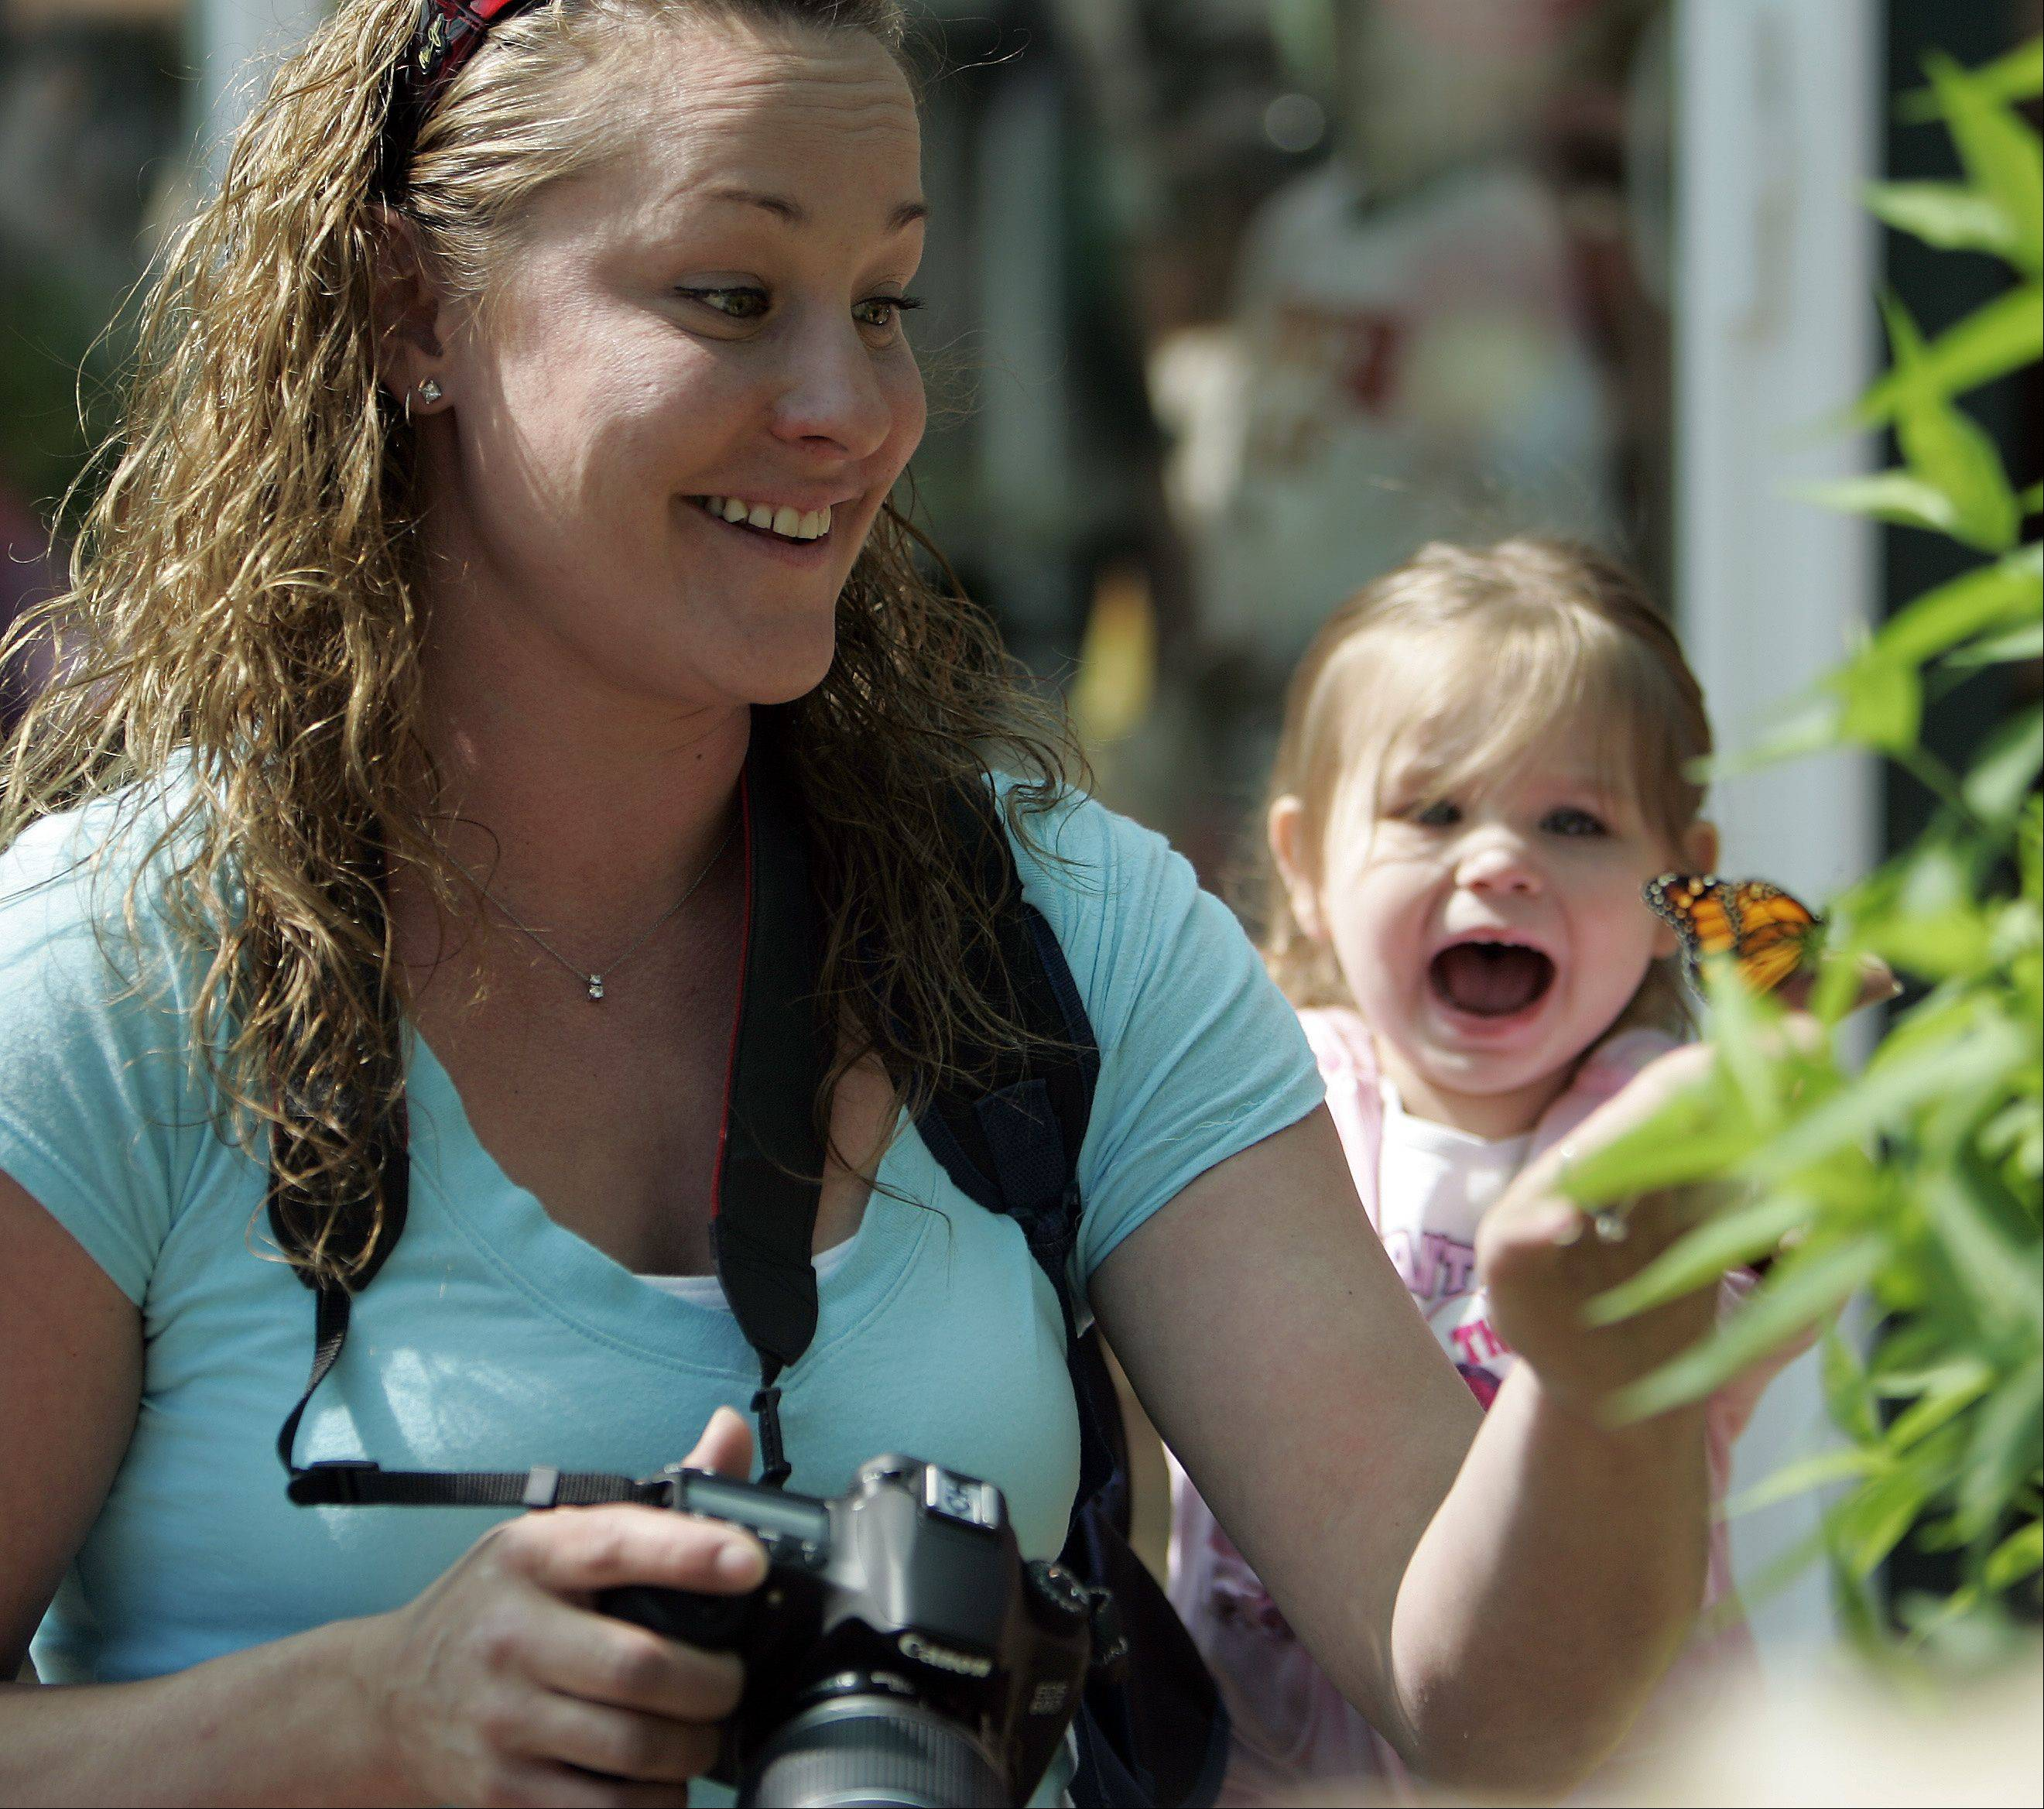 Two-year-old Ava Luhmann reacts as her mother Jennifer Luhmann, both of Cary, holds a butterfly during the 10th anniversary of the Butterfly House at Peck Farm Park in Geneva Friday. Seven types of butterflies were released.